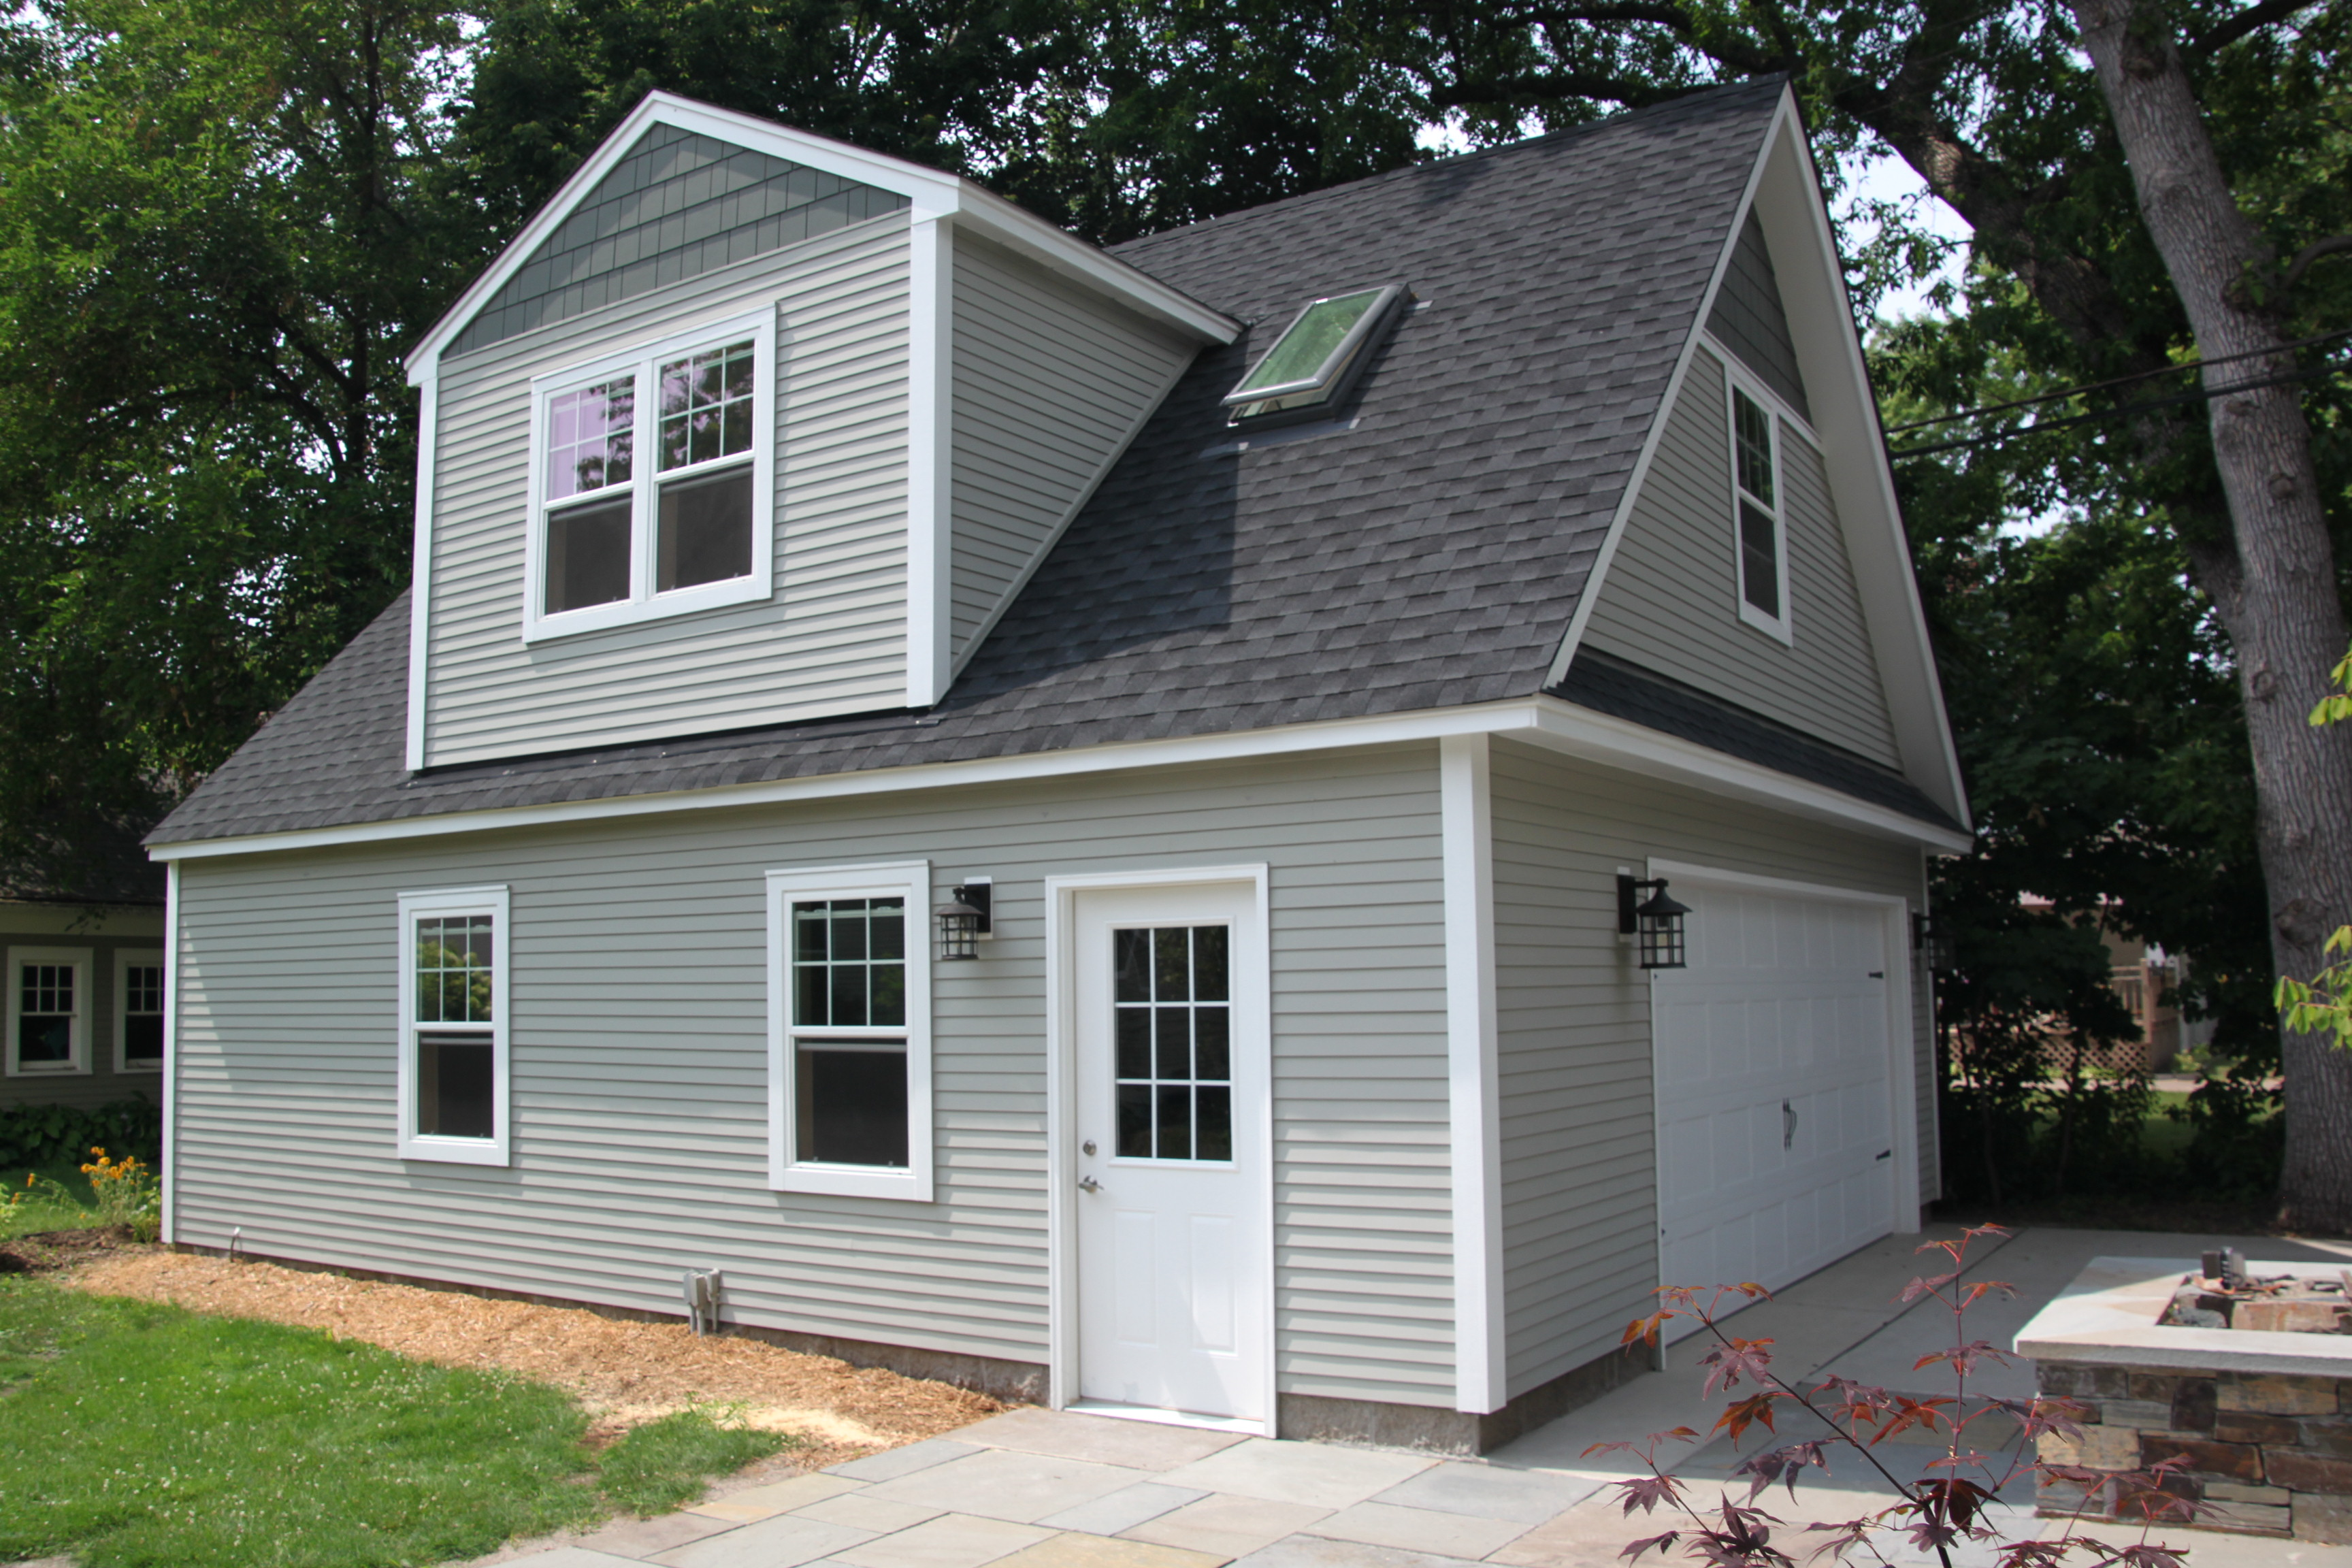 ideas for finishing a garage floor - 2 Car 2 Story Garage Using Attic Trusses and Dormer